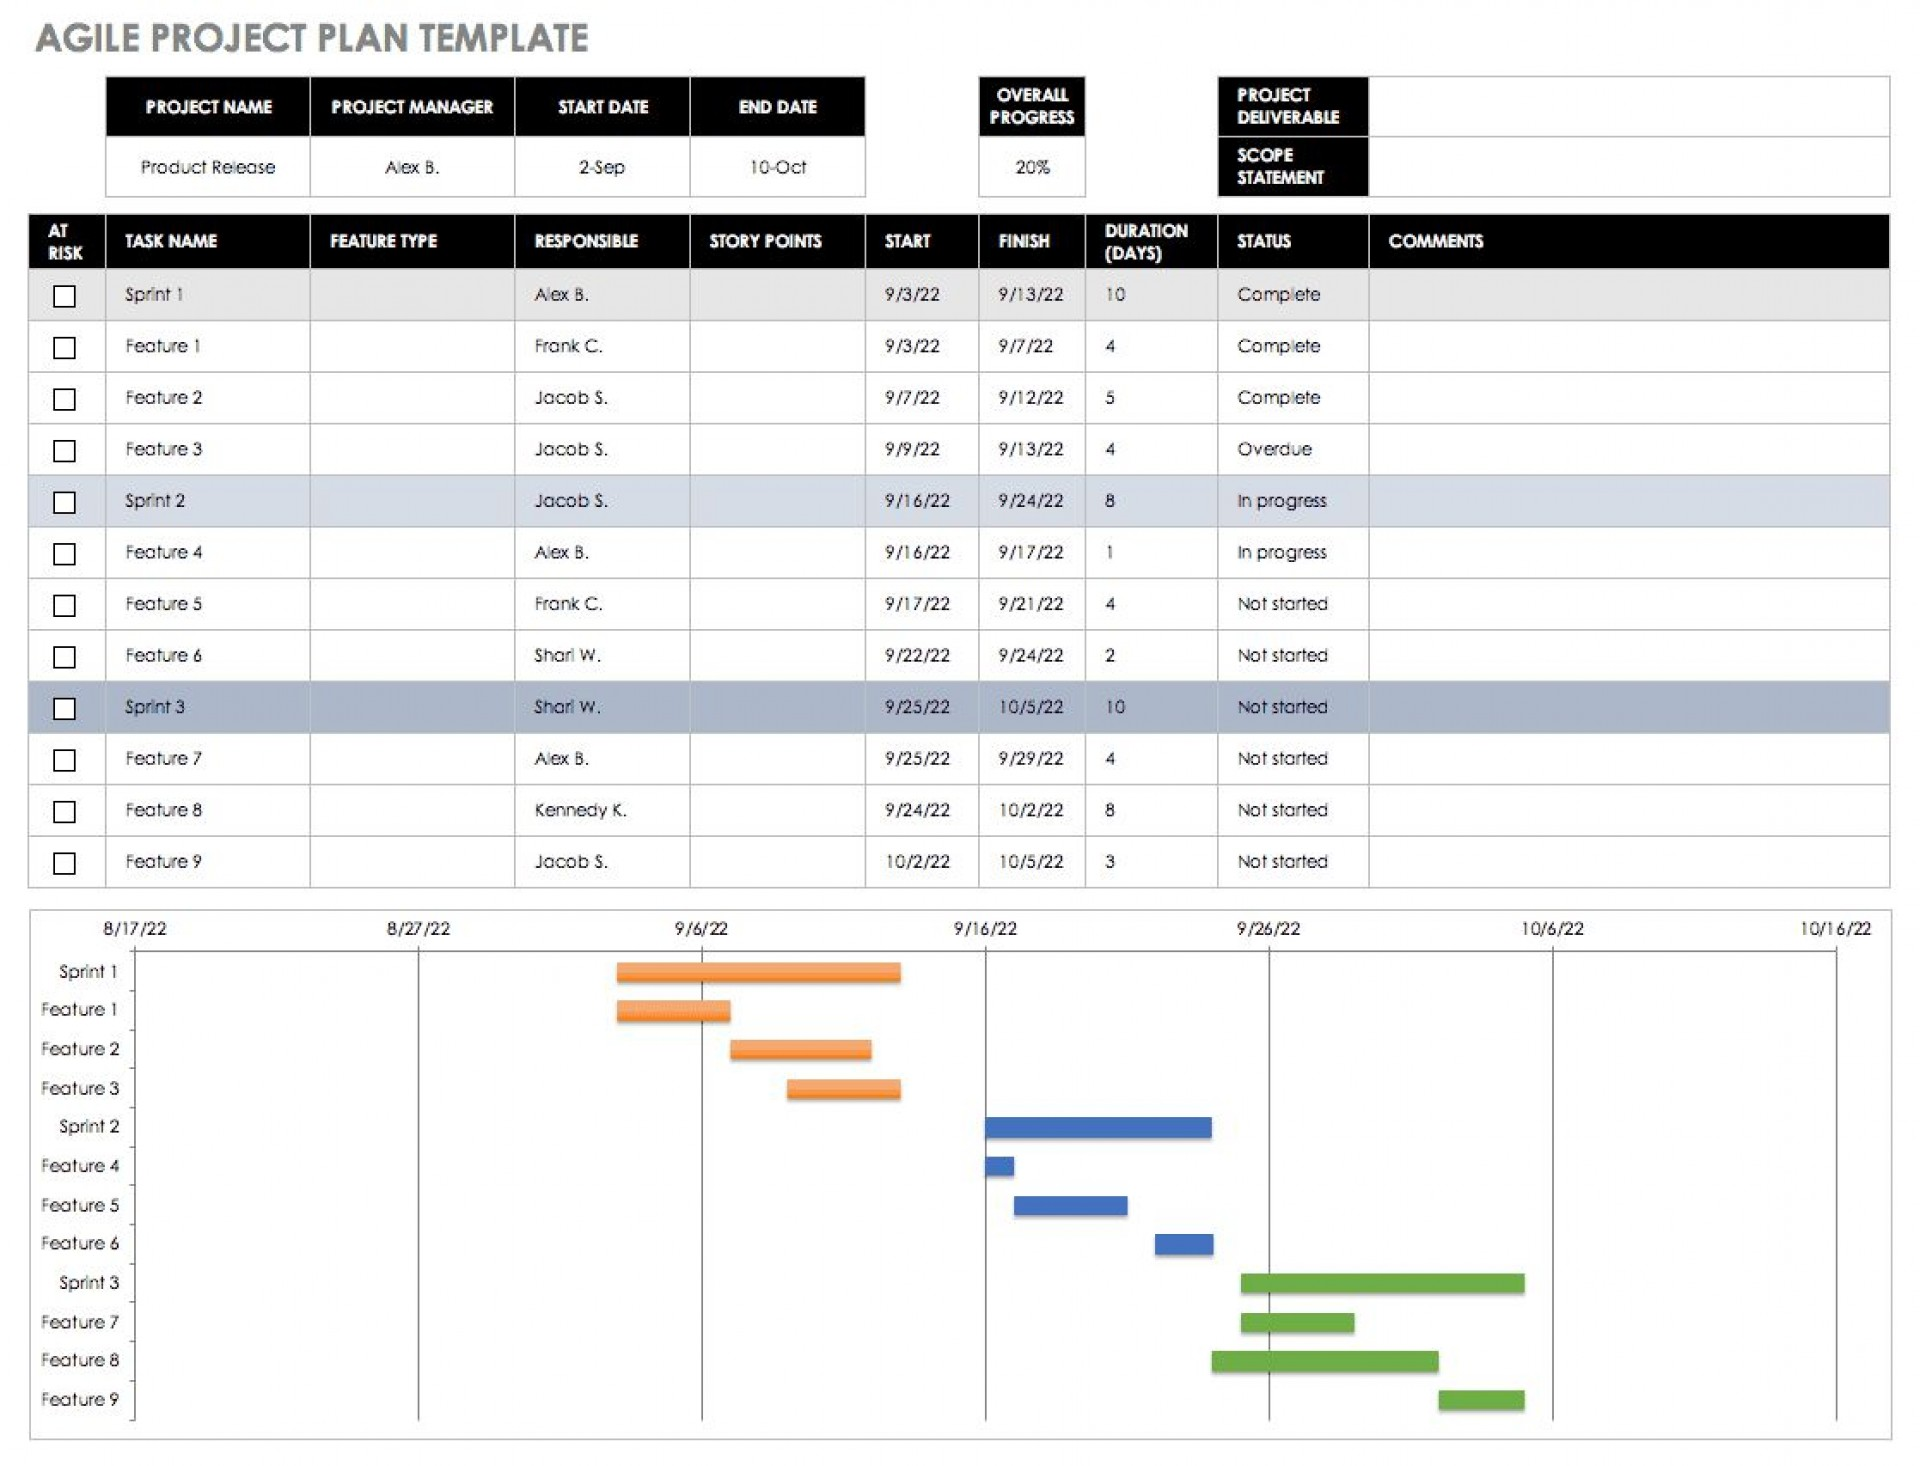 006 Stunning Project Plan Template Excel Free Sample  Action Download Xl Xlsx1920